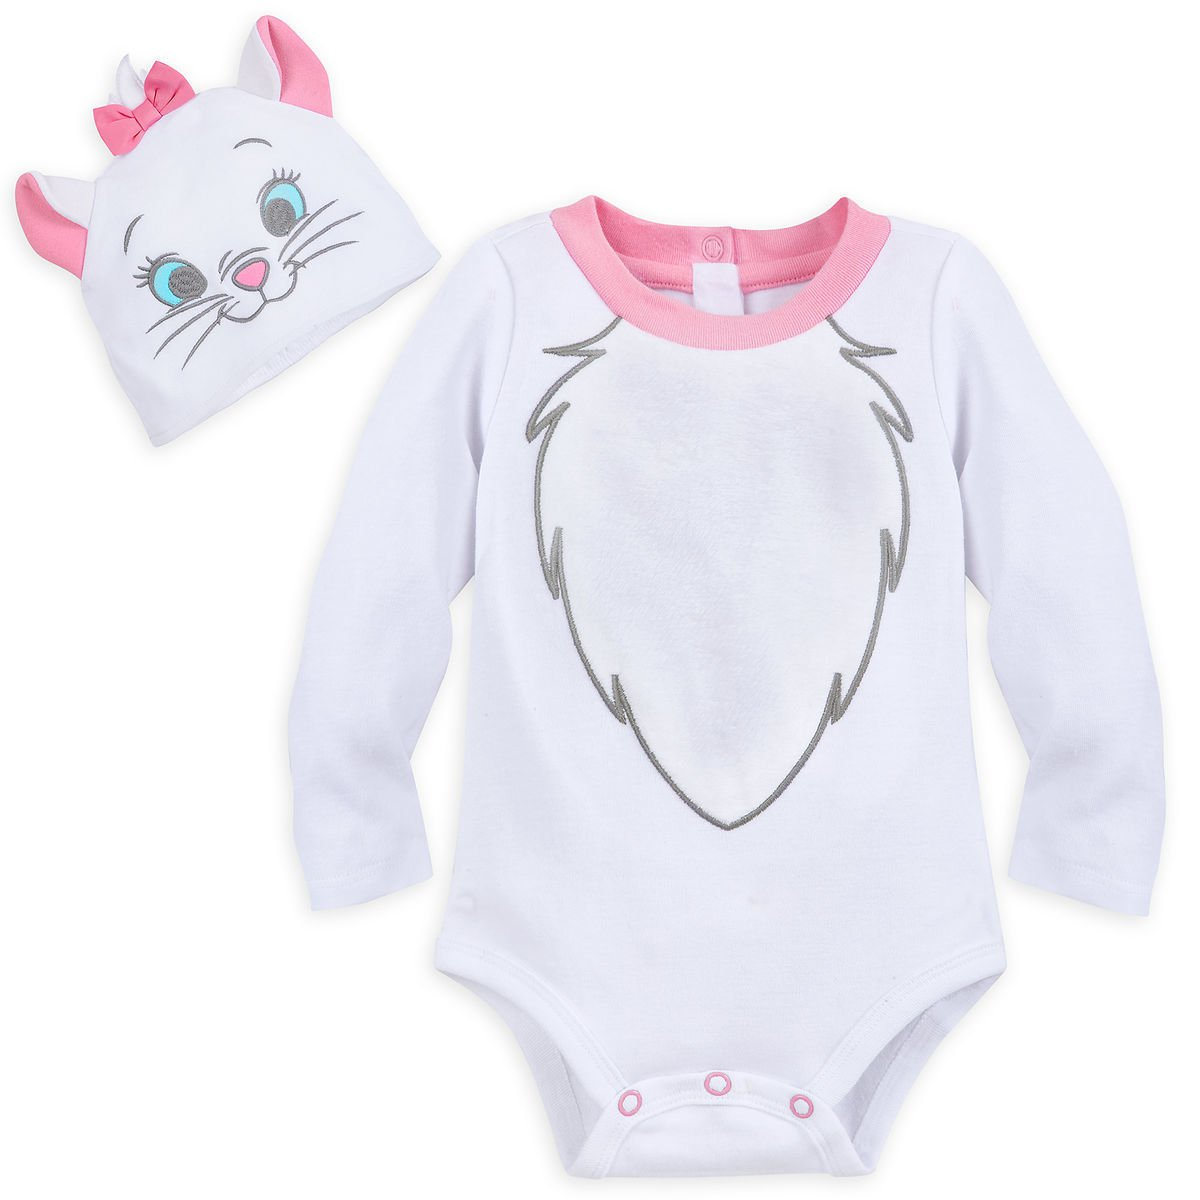 Disney Store Marie Baby Costume Bodysuit Hat 9-12 Months 2018 New